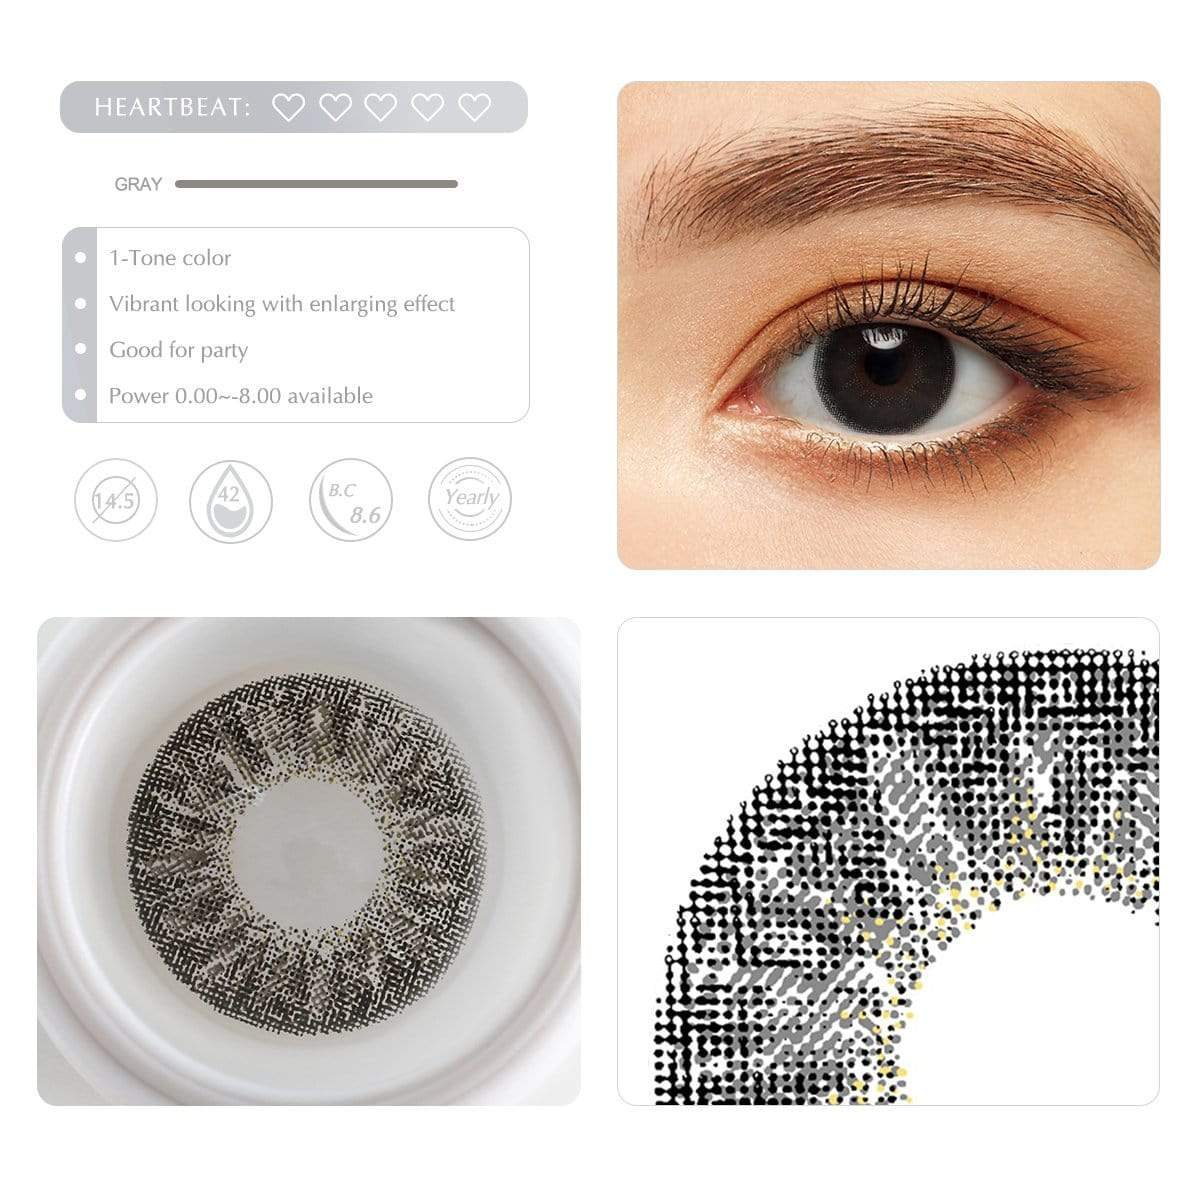 Diamond gray contact lens details display rederings